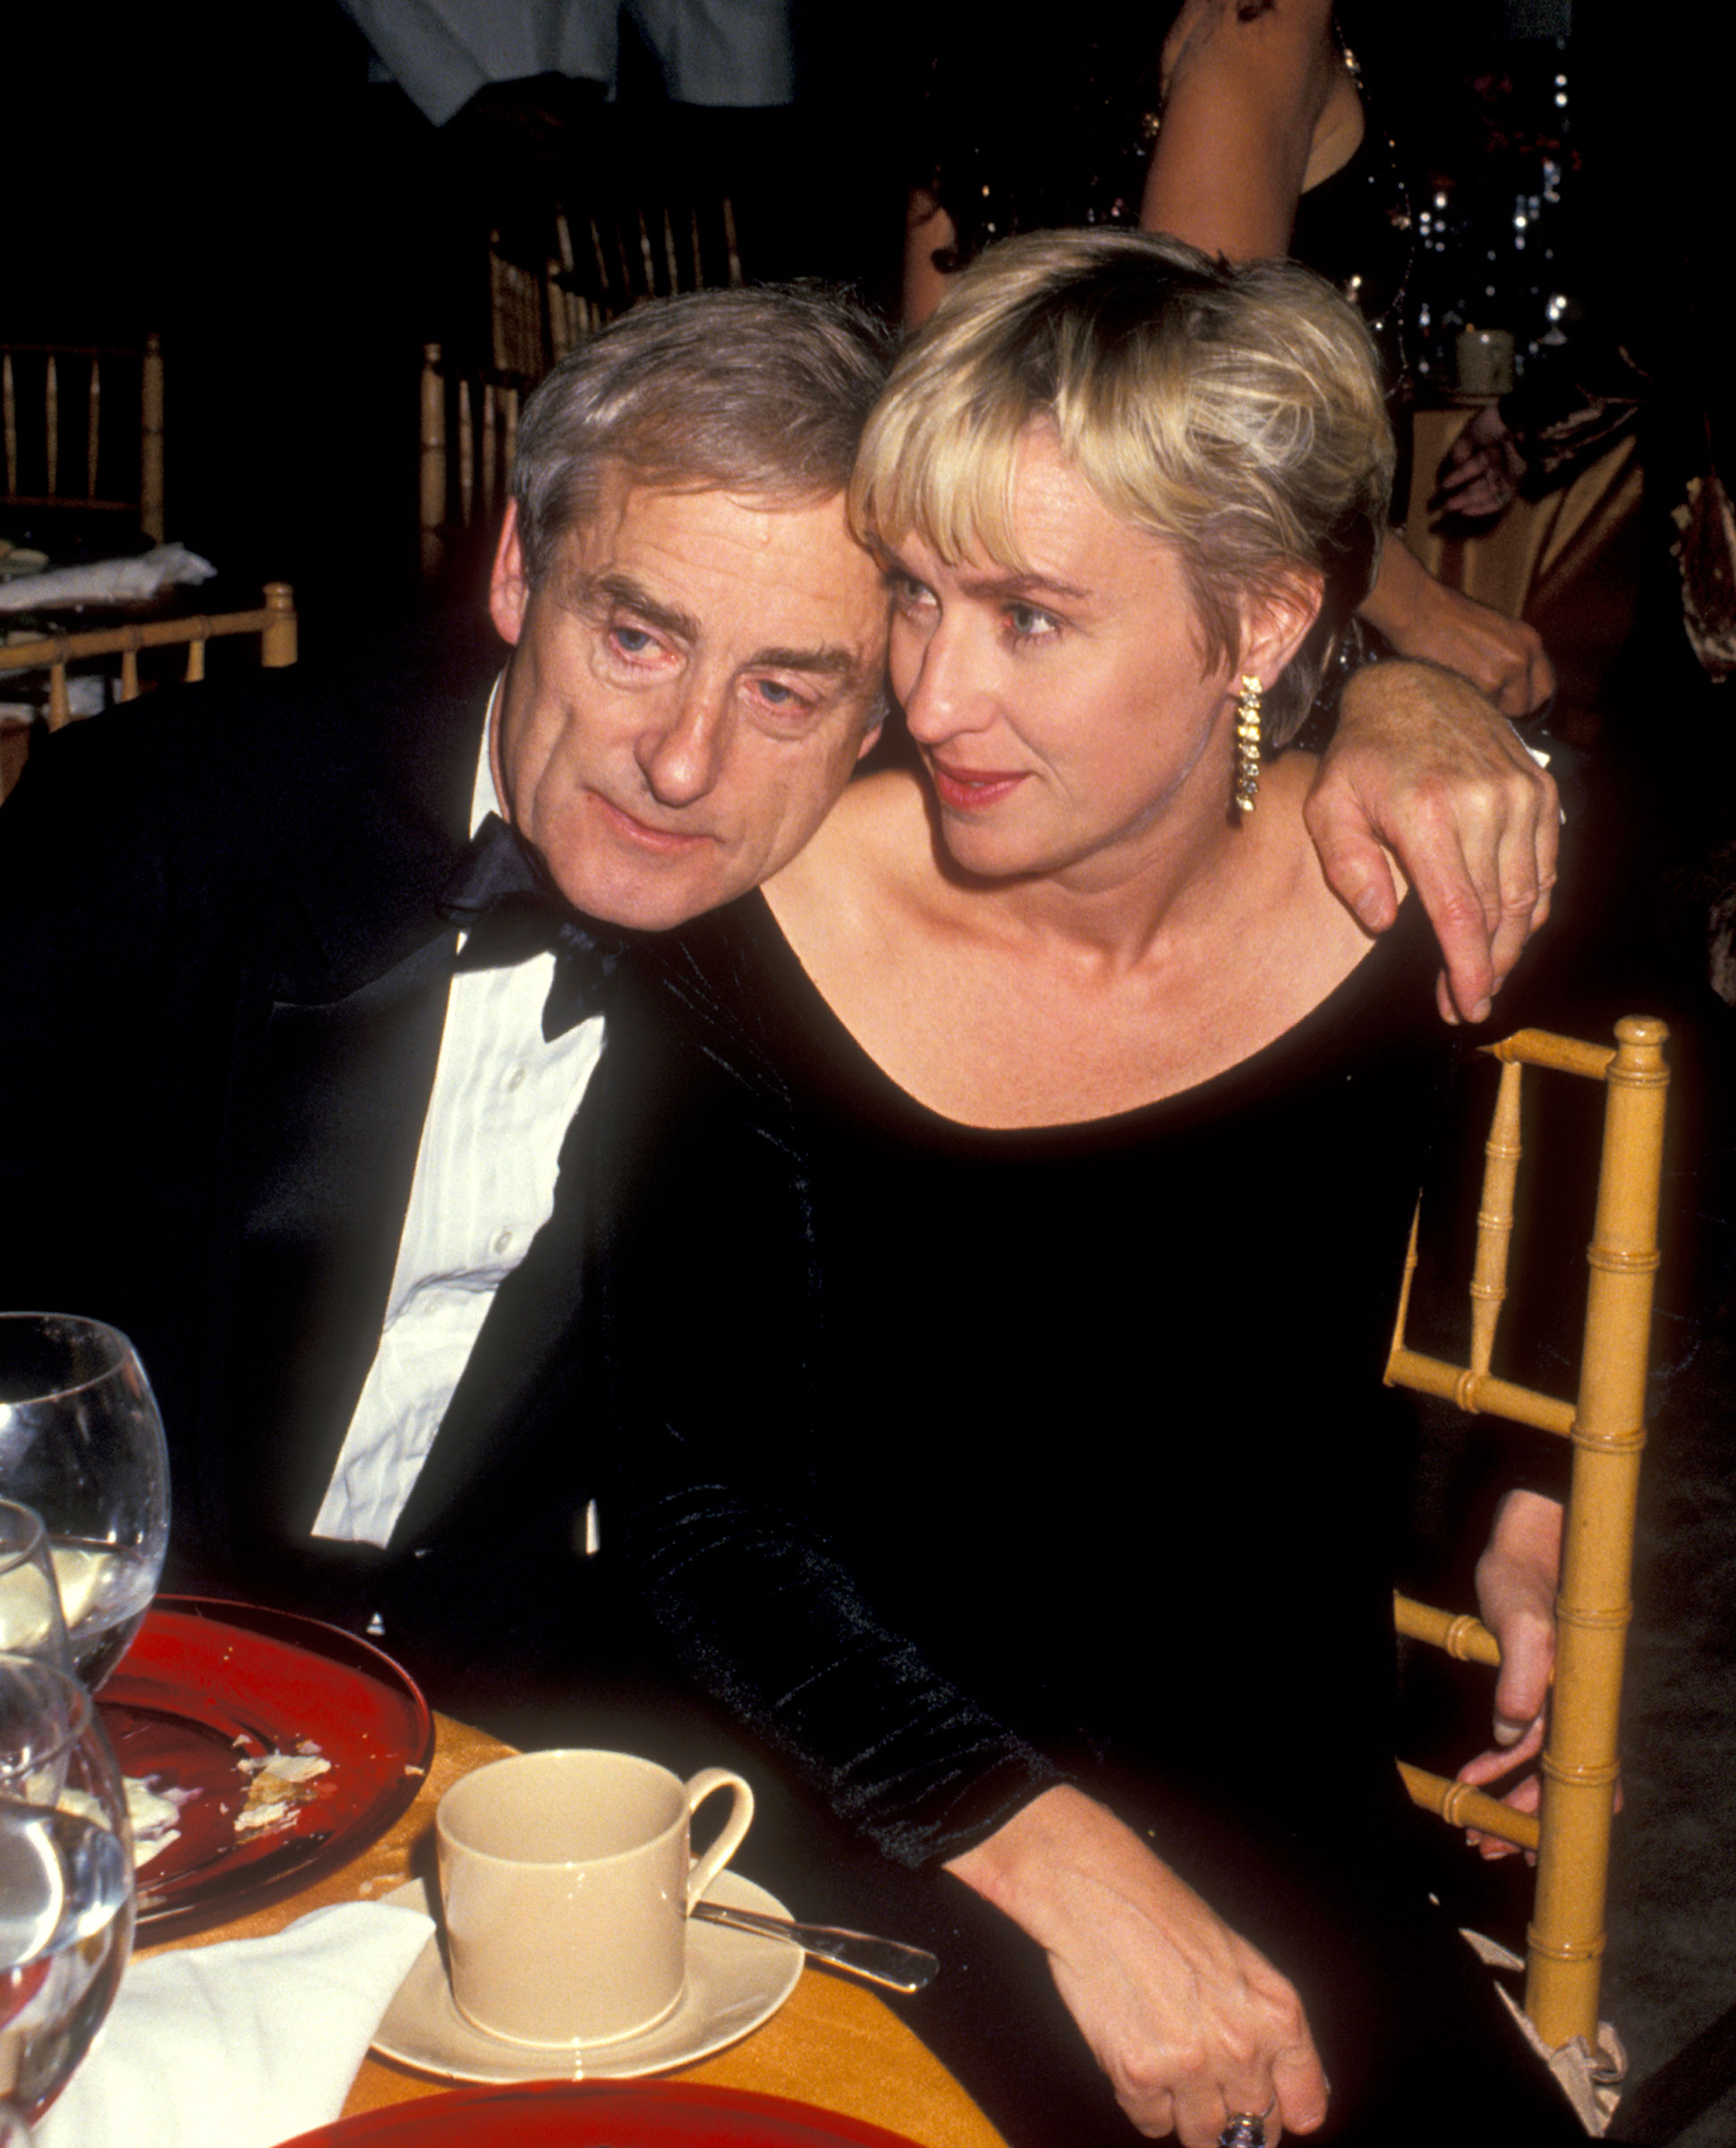 Evans and Tina Brown attend a party at The New York Public Library on September 27, 1993 in New York City.